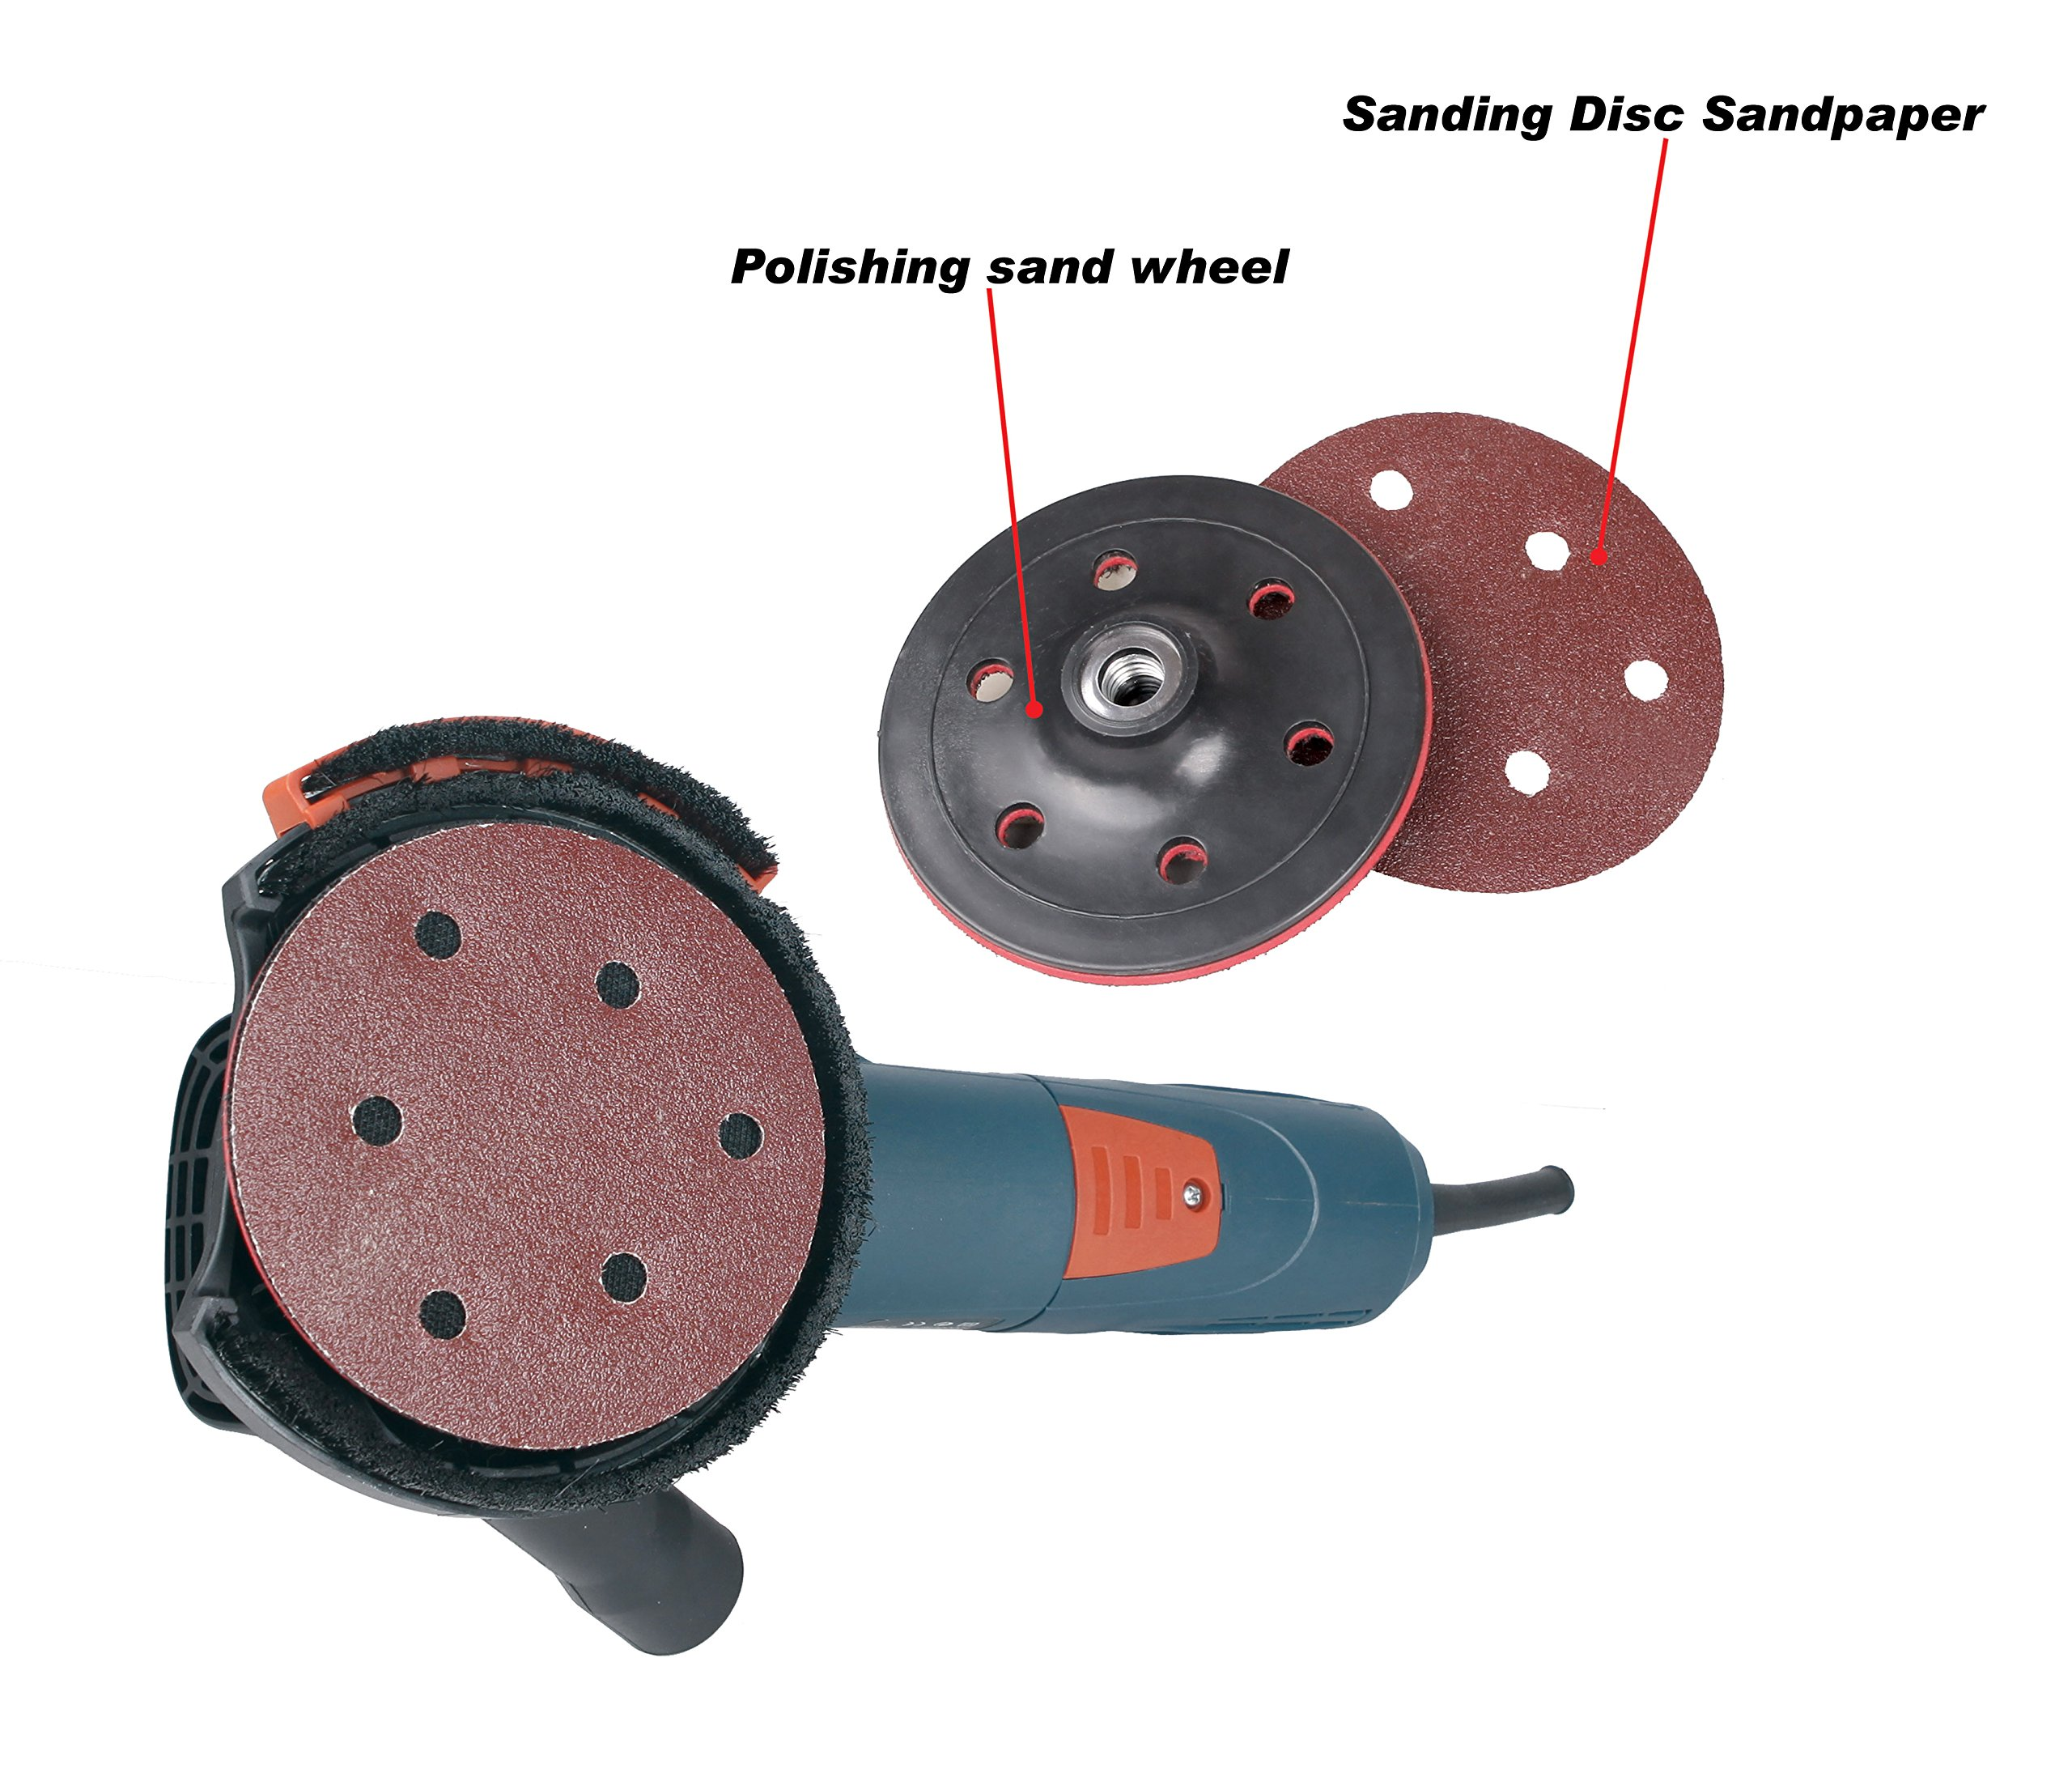 Dastool Expert Surface Grinding Dust Shroud for Angle Grinder,Universal 5-Inch Dt1701-125 by Dastool (Image #5)